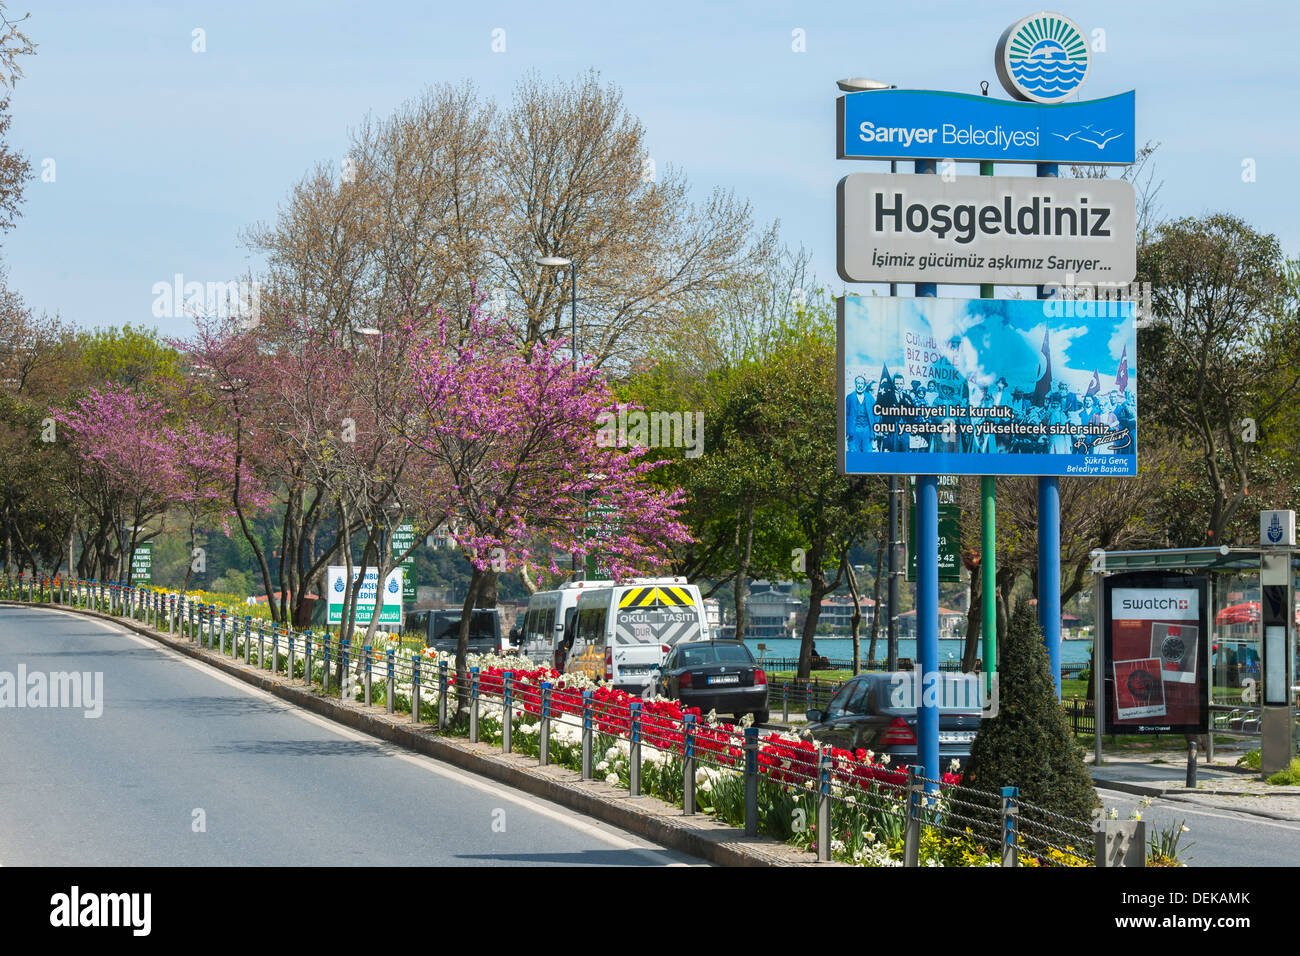 Istanbul, Sariyer, Rumelihisar, Uferstrasse am Bosporus Stock Photo